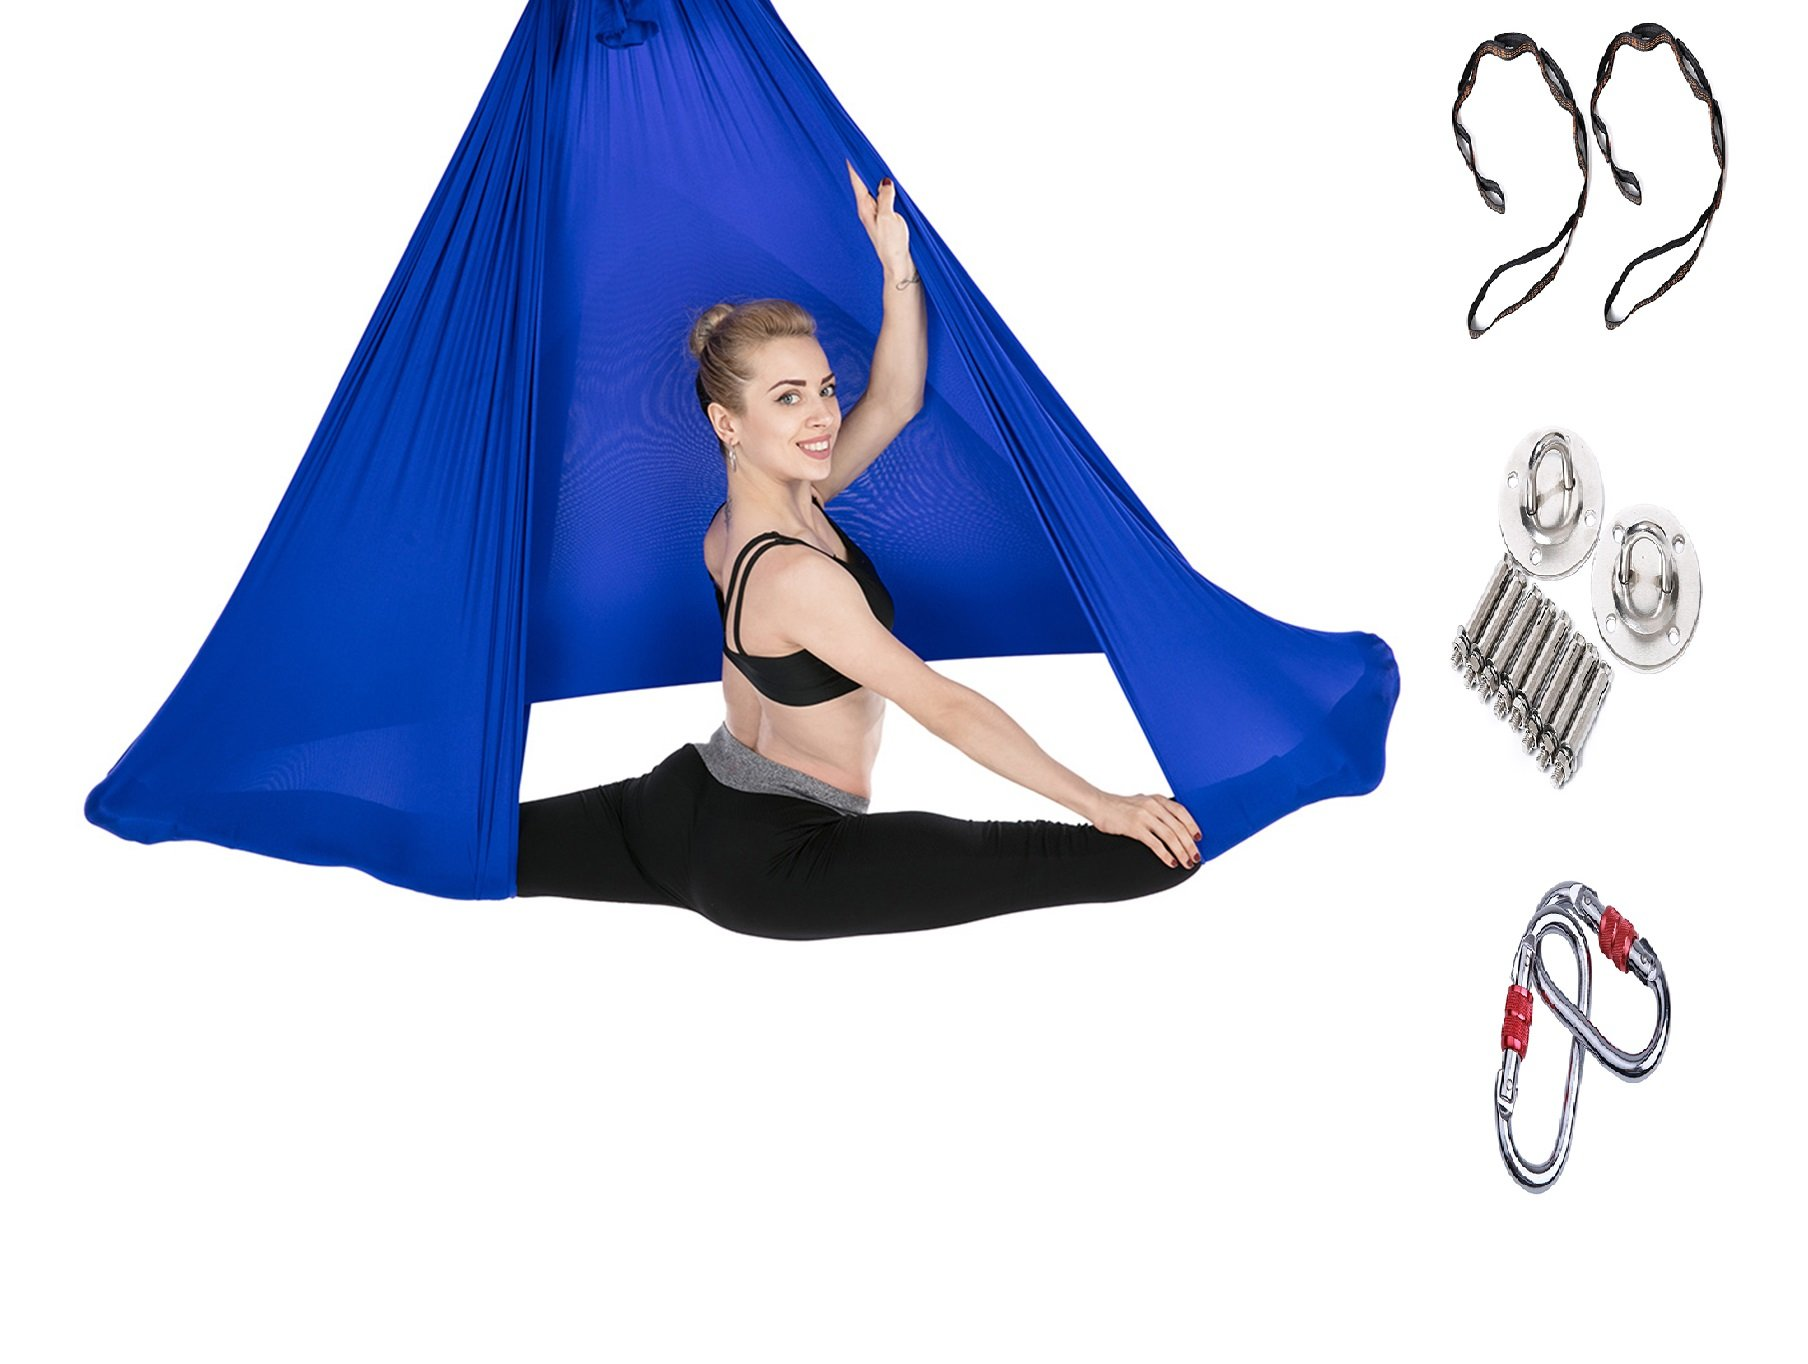 Tofern Aerial Yoga Hammock Kit 5.5 Yards Antigravity Trapeze Inversion Exercise Home Indoor Outdoor Yoga Silk Swing Sling Set with Hardware Ceiling Hooks Bolts 2 Extension Straps, Royal Blue by Tofern (Image #1)